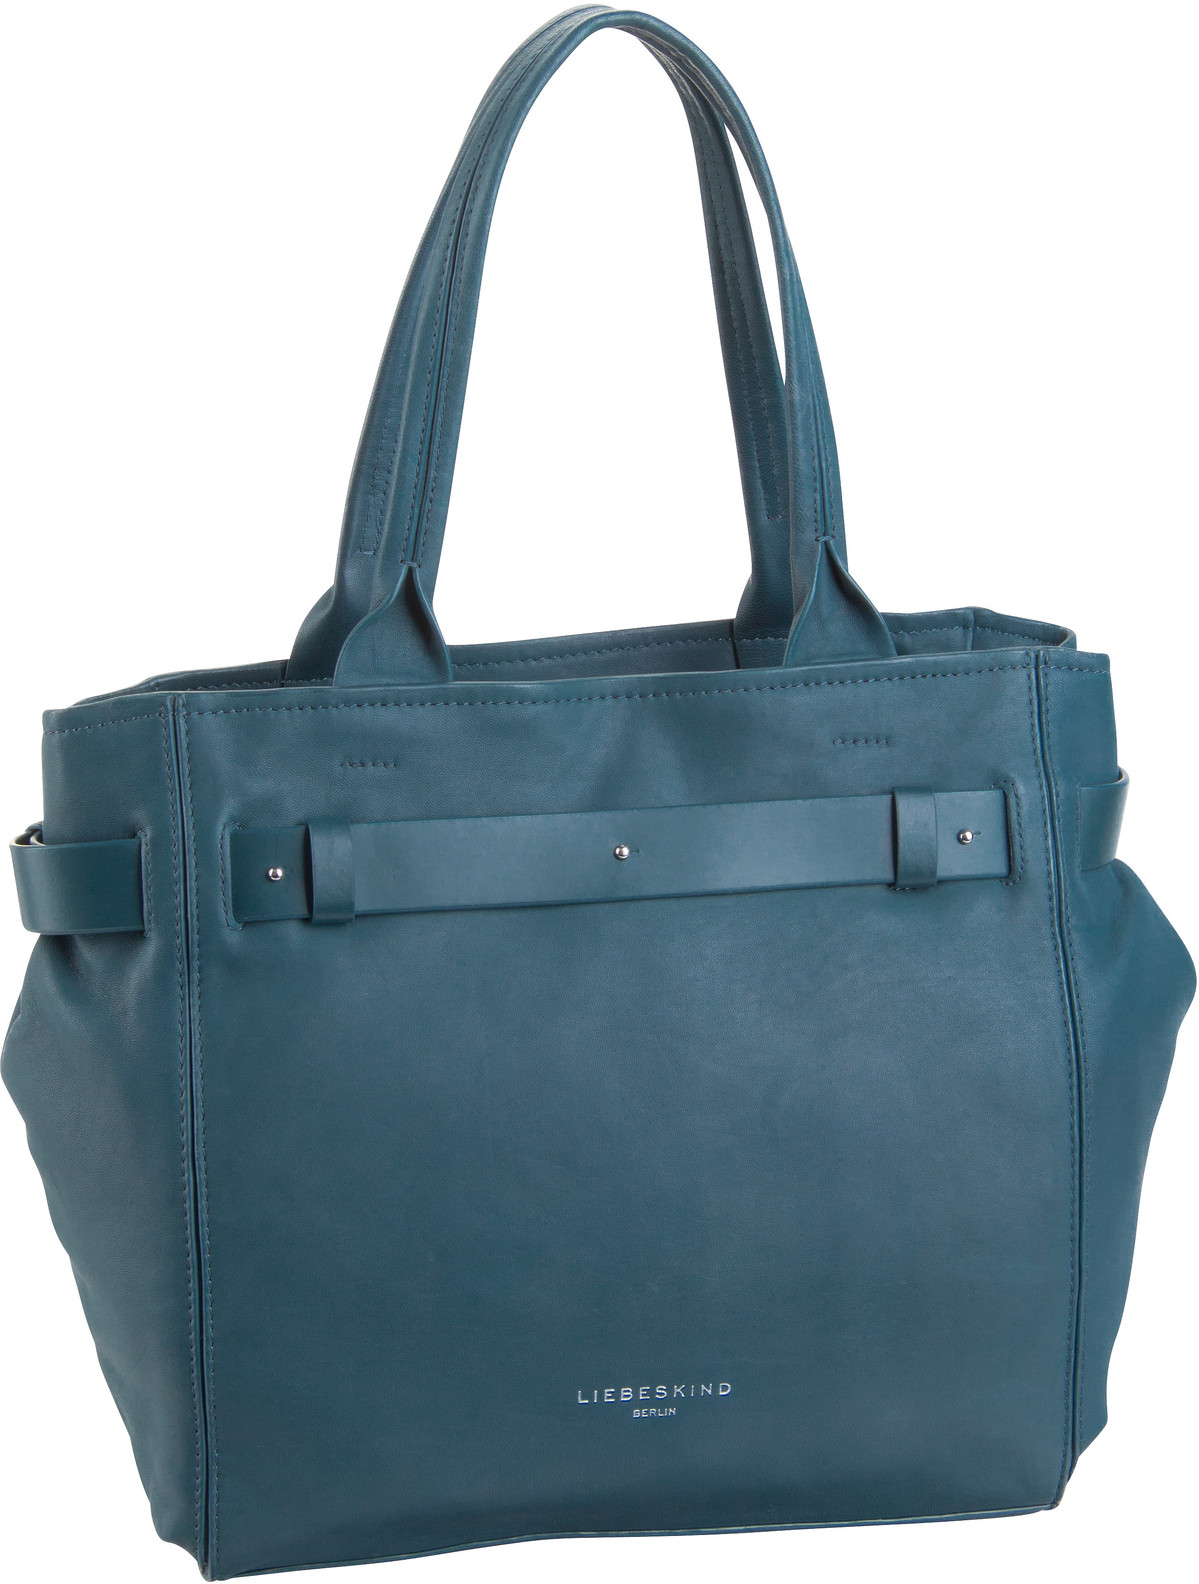 Berlin Handtasche Soft Bucket Satchel M China Blue